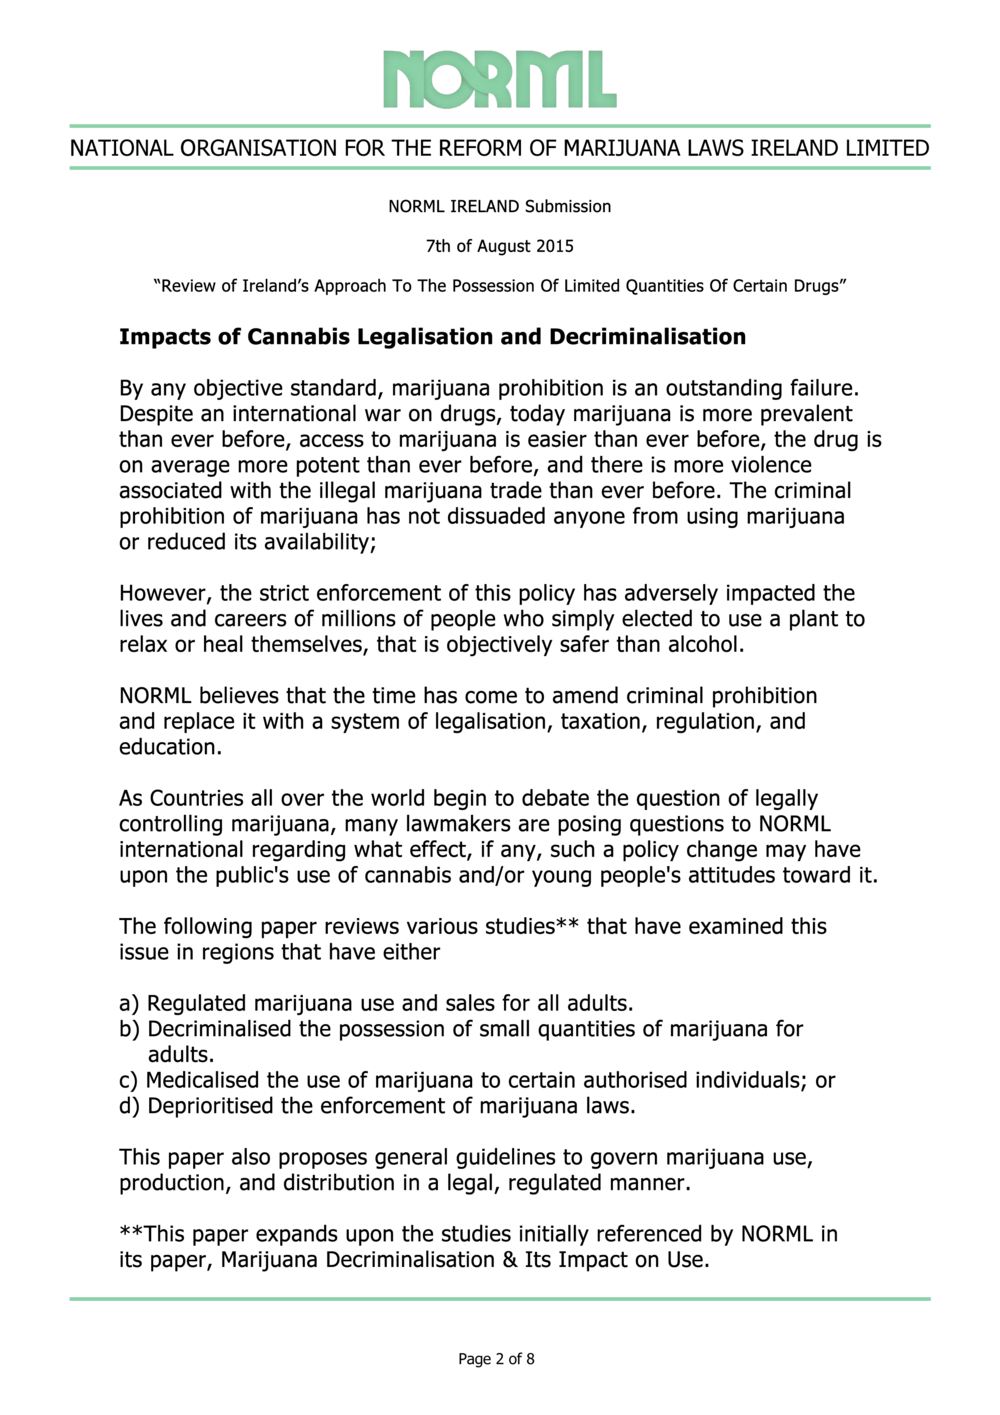 NORML Ireland Submission Page 2 of 8.png